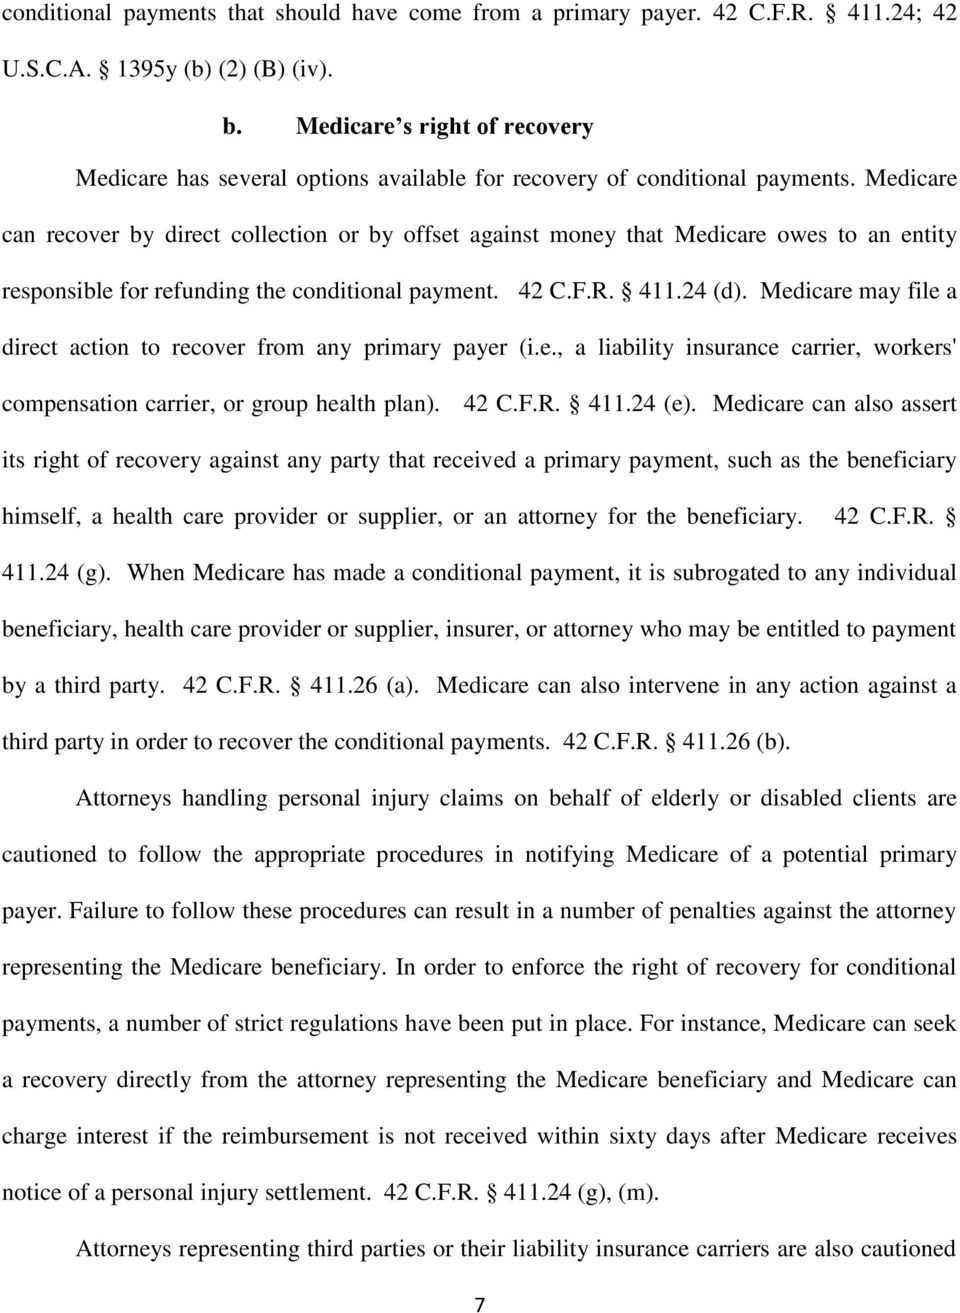 Medicare can recover by direct collection or by offset against money that Medicare owes to an entity responsible for refunding the conditional payment. 42 C.F.R. 411.24 (d).